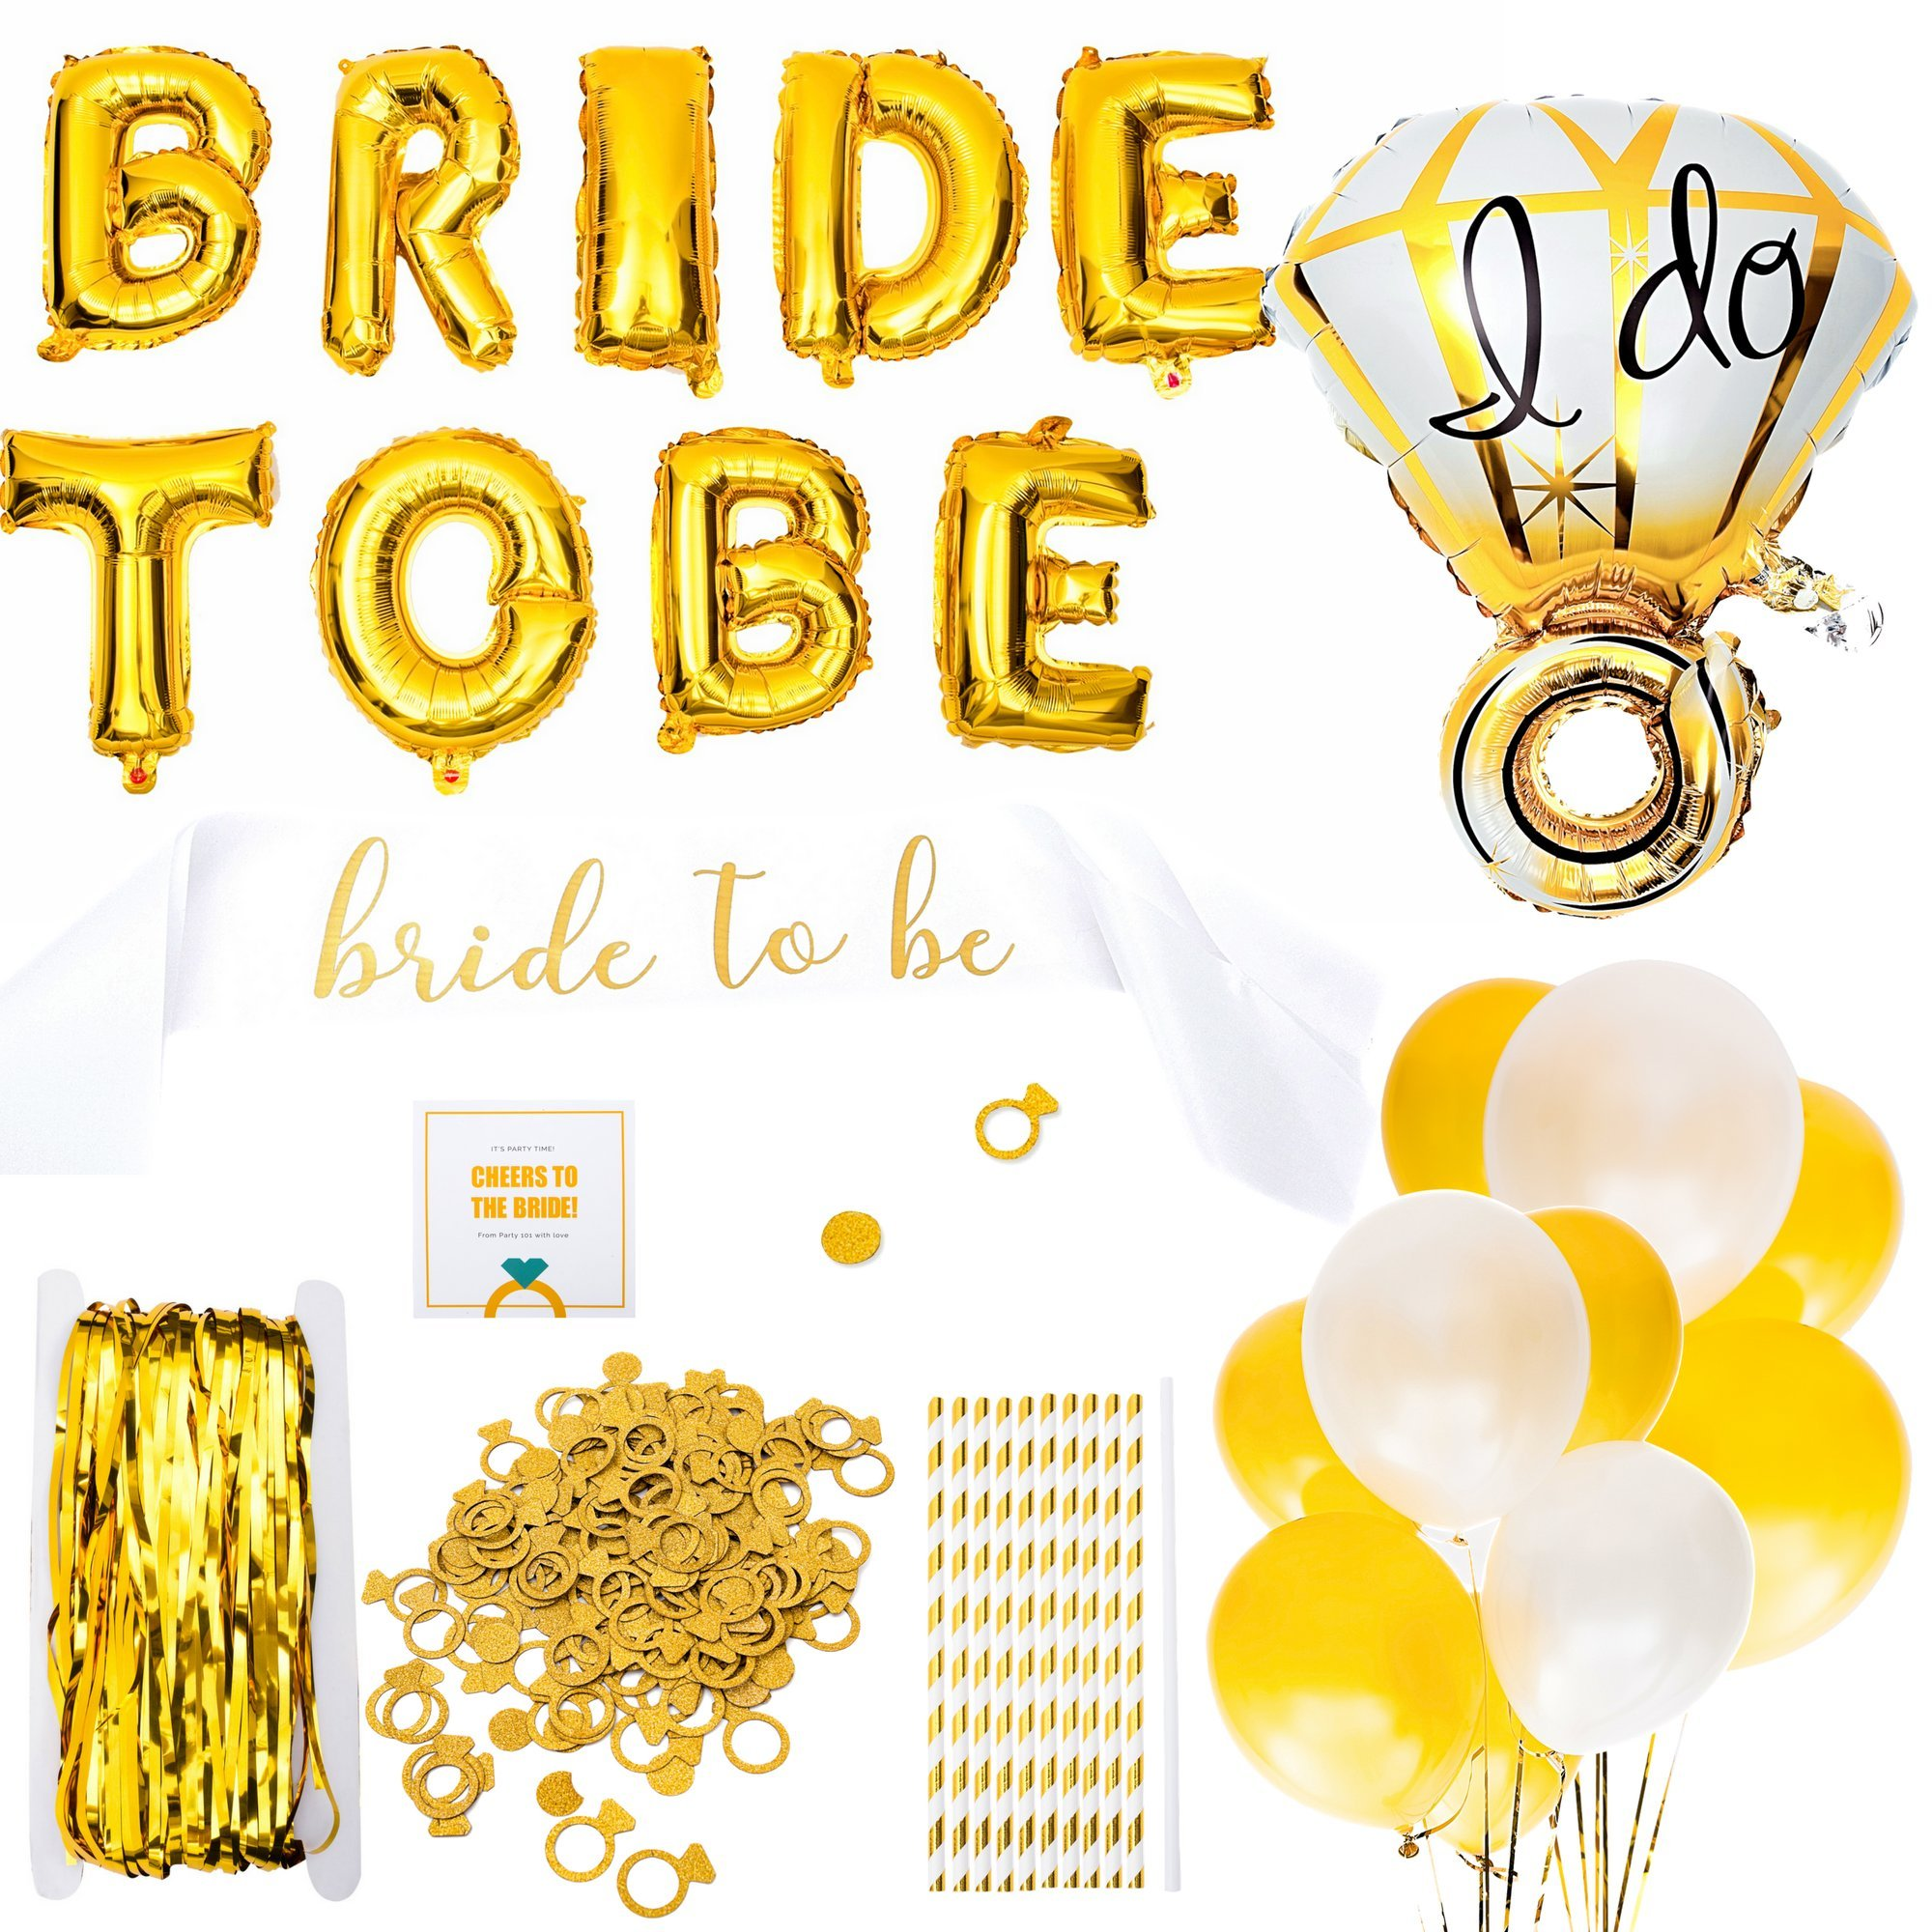 Bachelorette Party Decorations - Party Supplies for Bridal Showers | Engagement Party Accessories | Latex + Ring Foil Balloons, Bride to Be Sash, Glitter Confetti, Straws | Gold & White Themed Kit